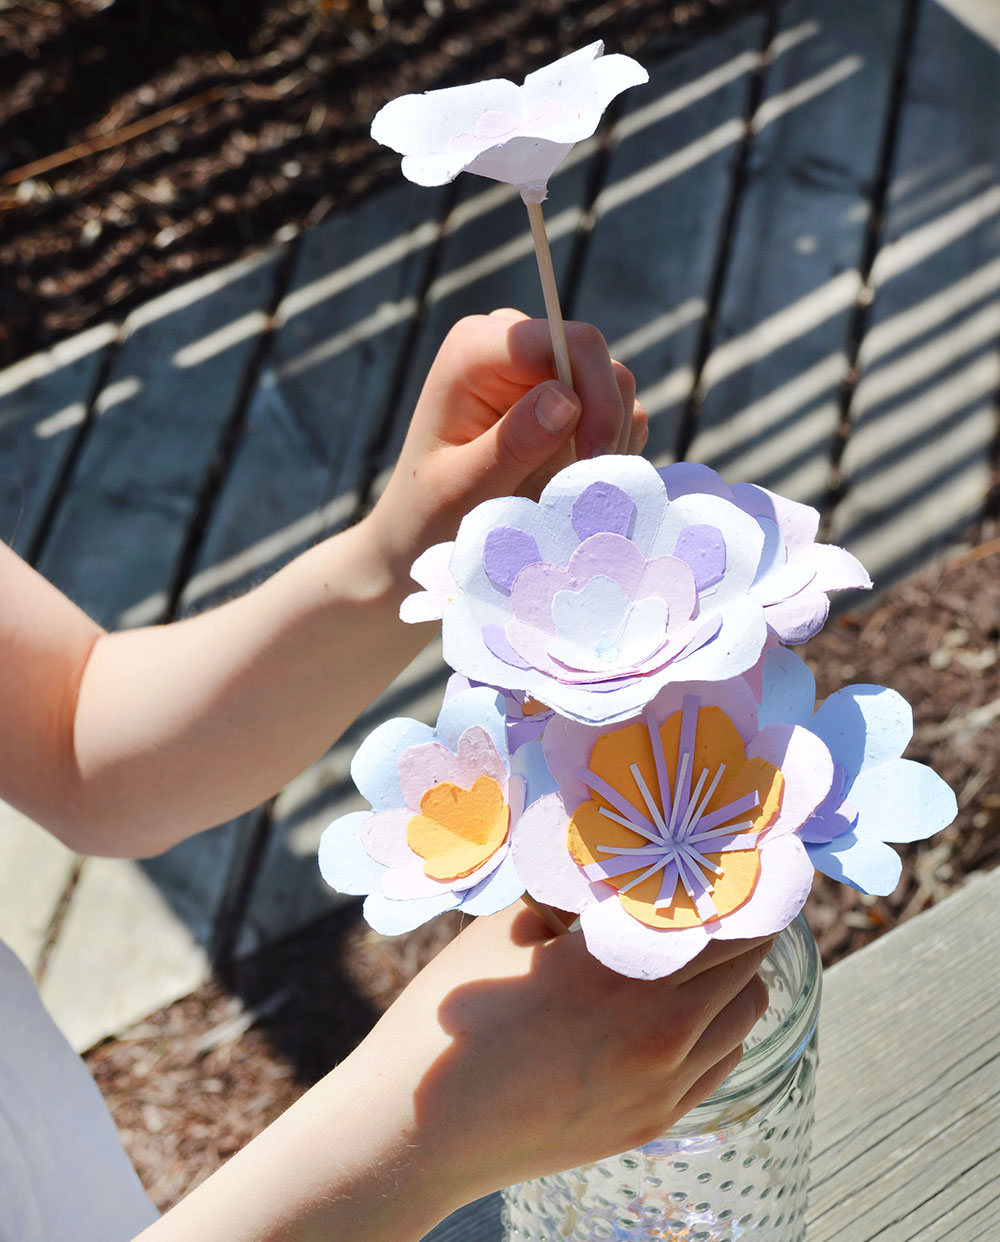 Make pretty seed paper flowers for summer wedding centerpieces & bouquets in this craft tutorial.